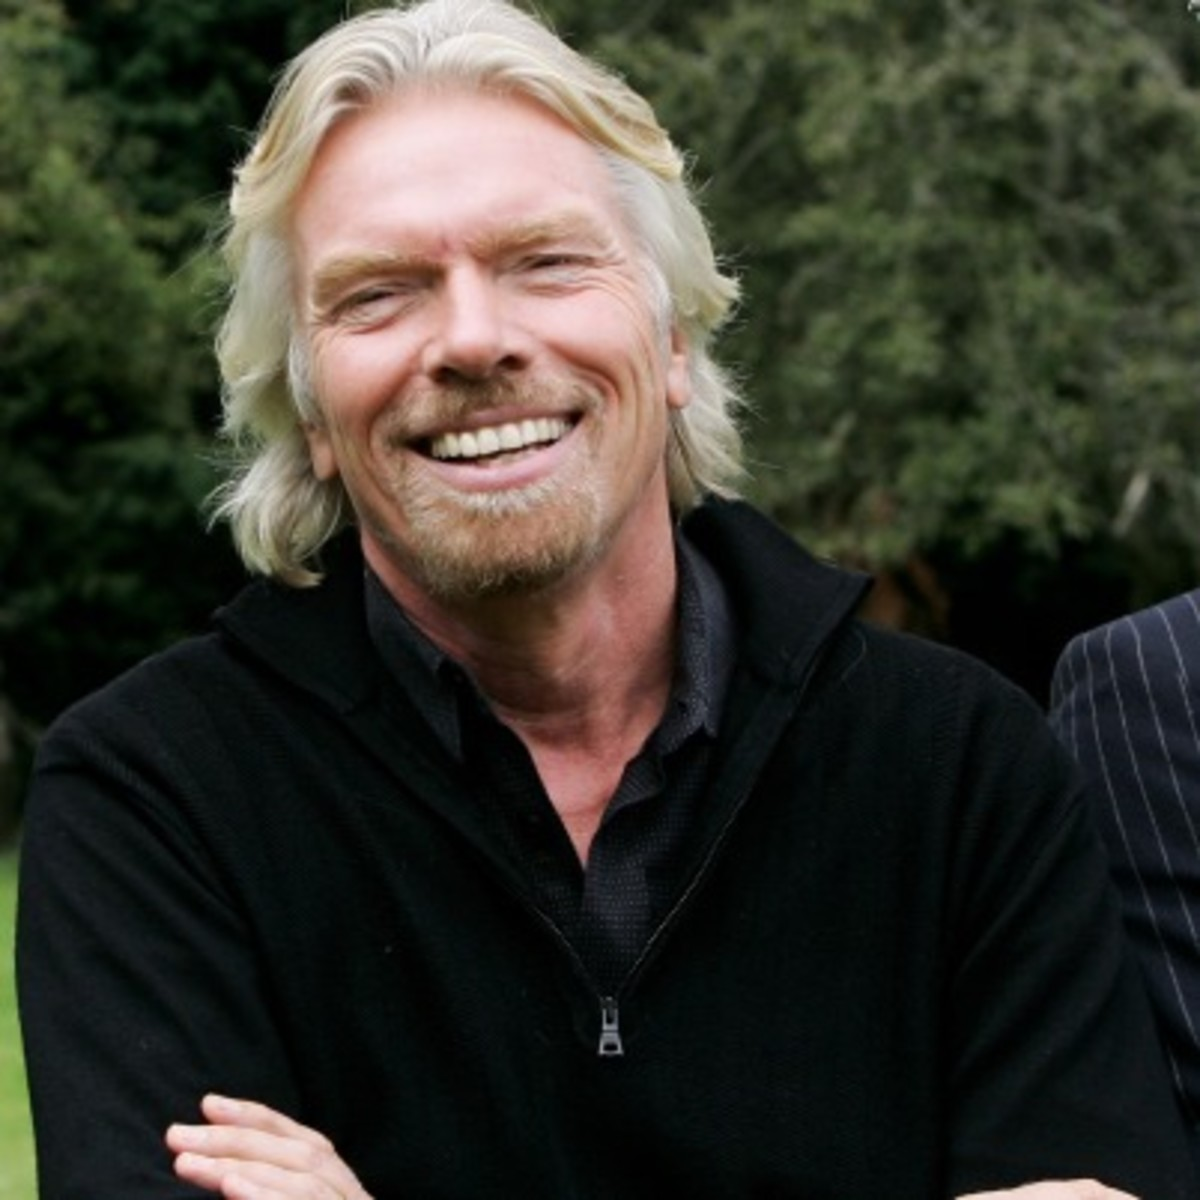 Richard Branson - Island, Life & Companies - Biography